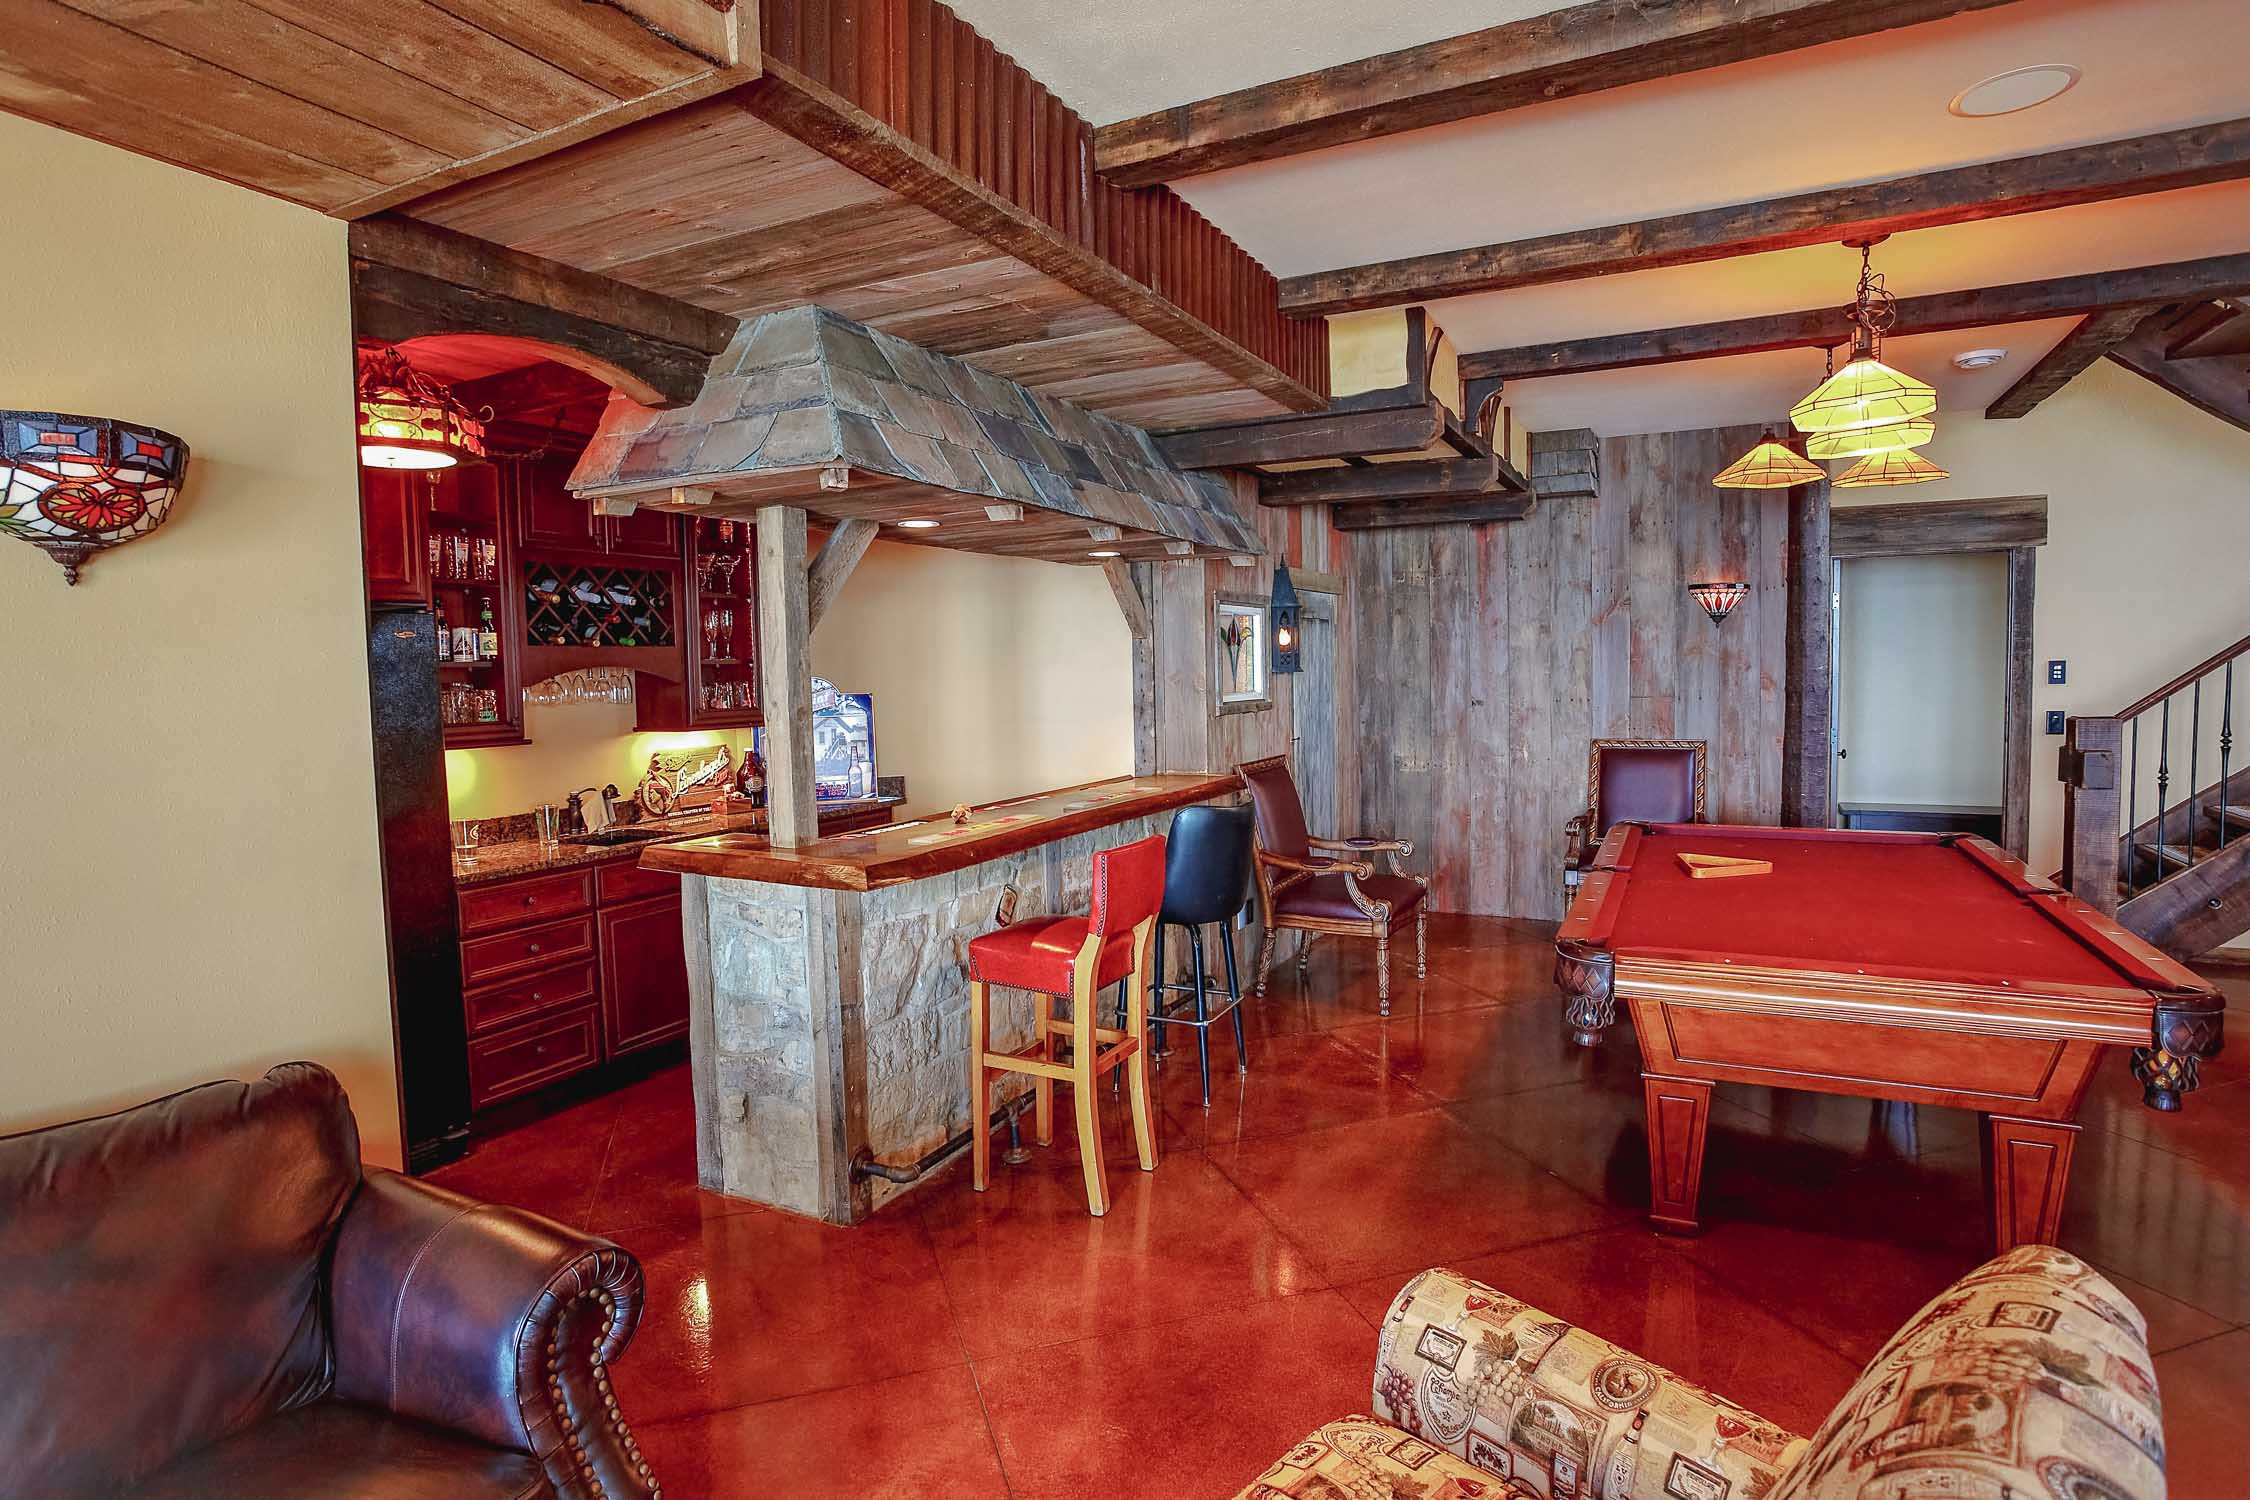 the basement floor of this one-of-a-kind storybook lake house basement uses stained, acid-washed concrete for the finished flooring of the room.